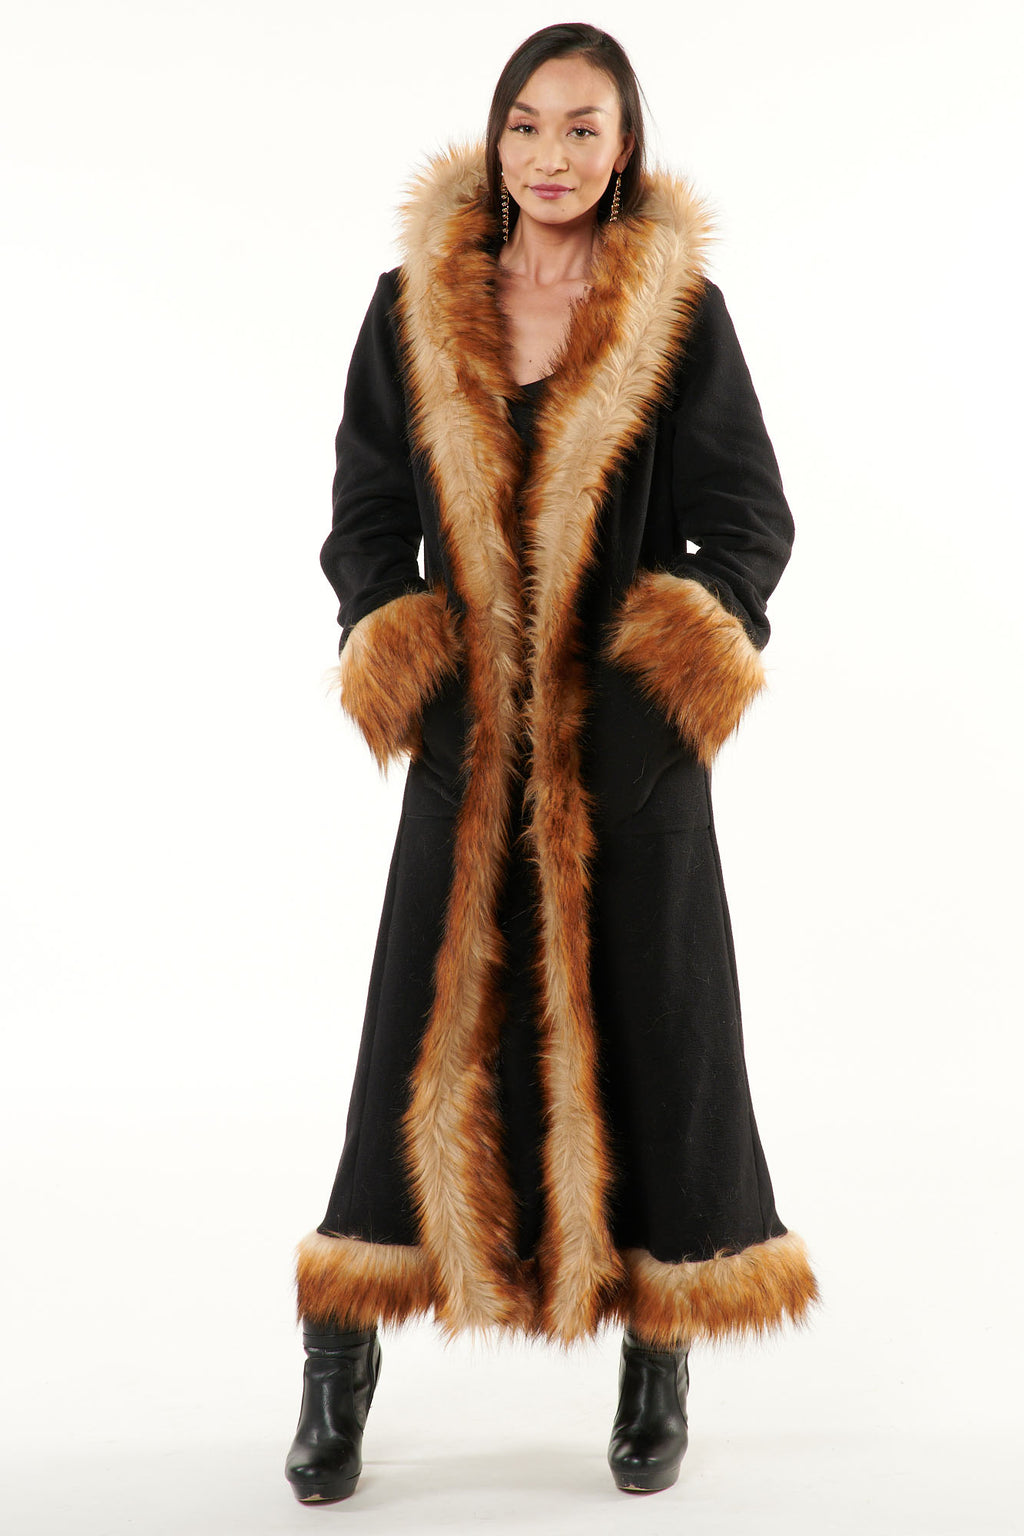 Classic Baroness Coat: Black Coat + Brown Fox Faux Fur Trim